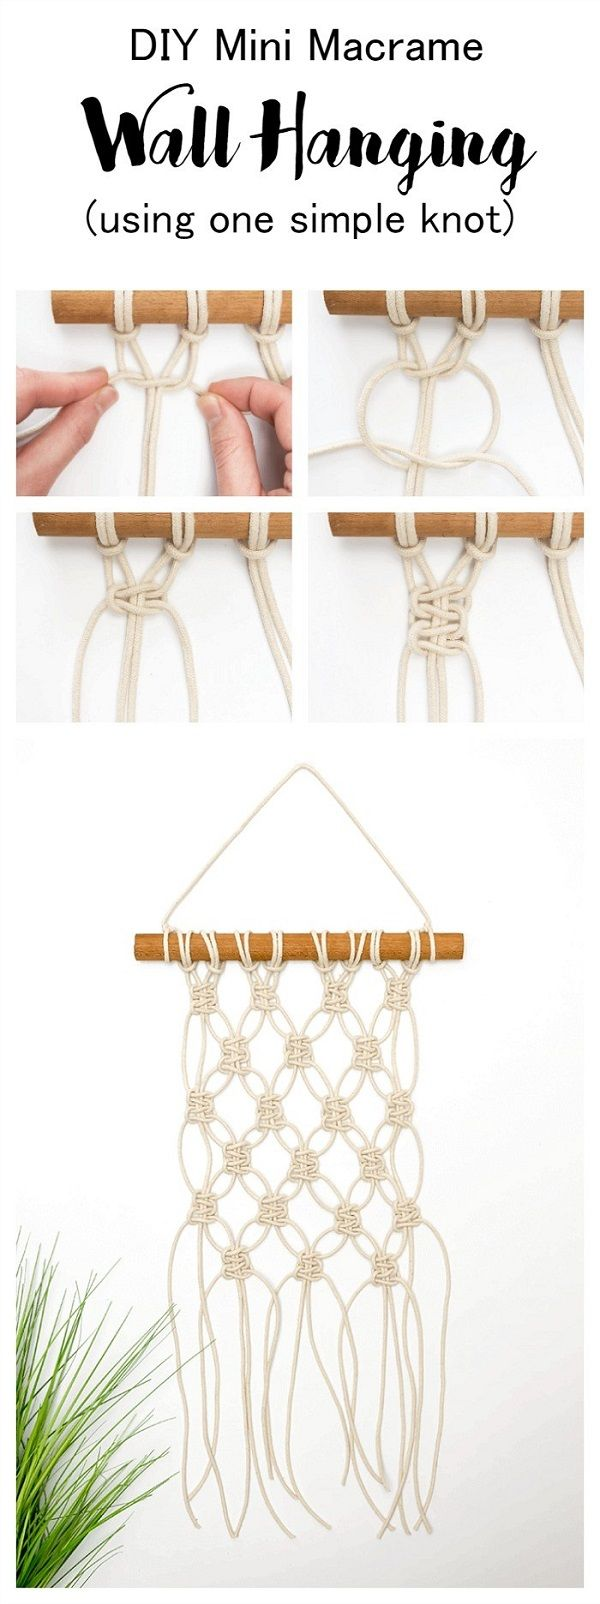 Check out this easy idea on how to make #DIY mini macrame wall hanging for living room #homedecor #budget #project @istandarddesign